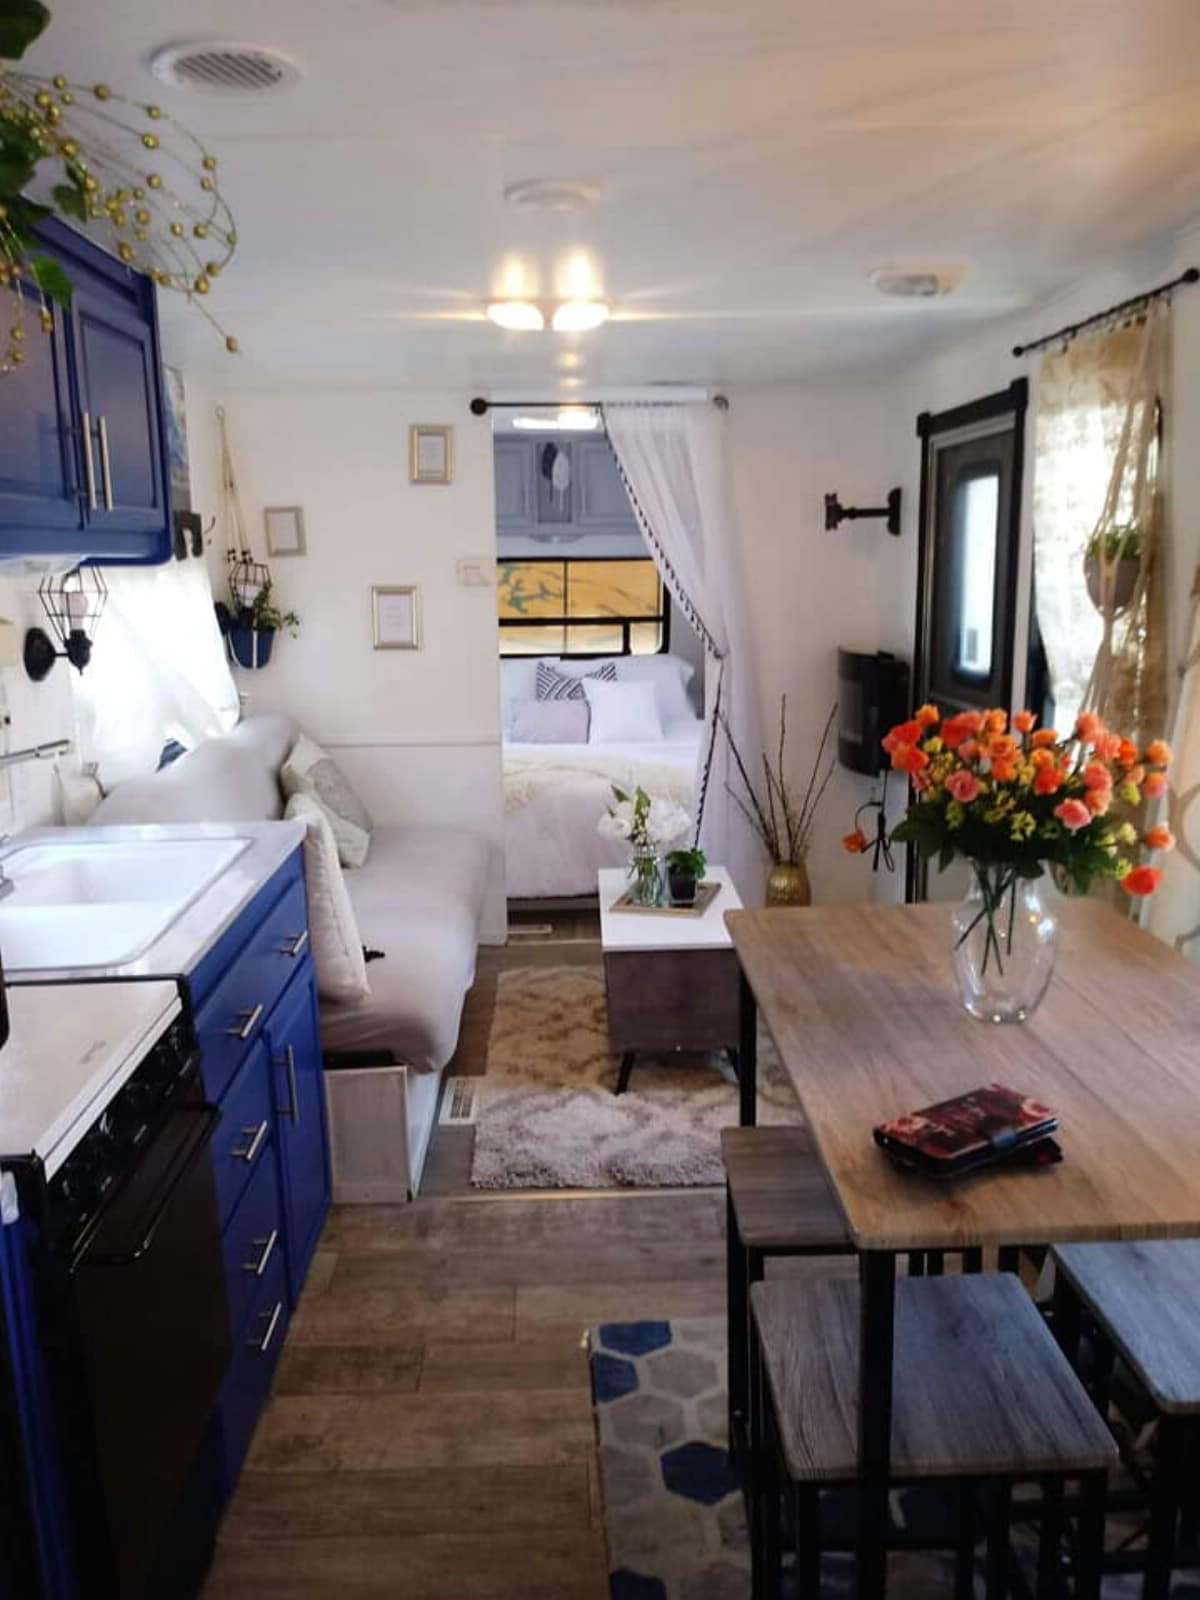 Living area and dining table of camper